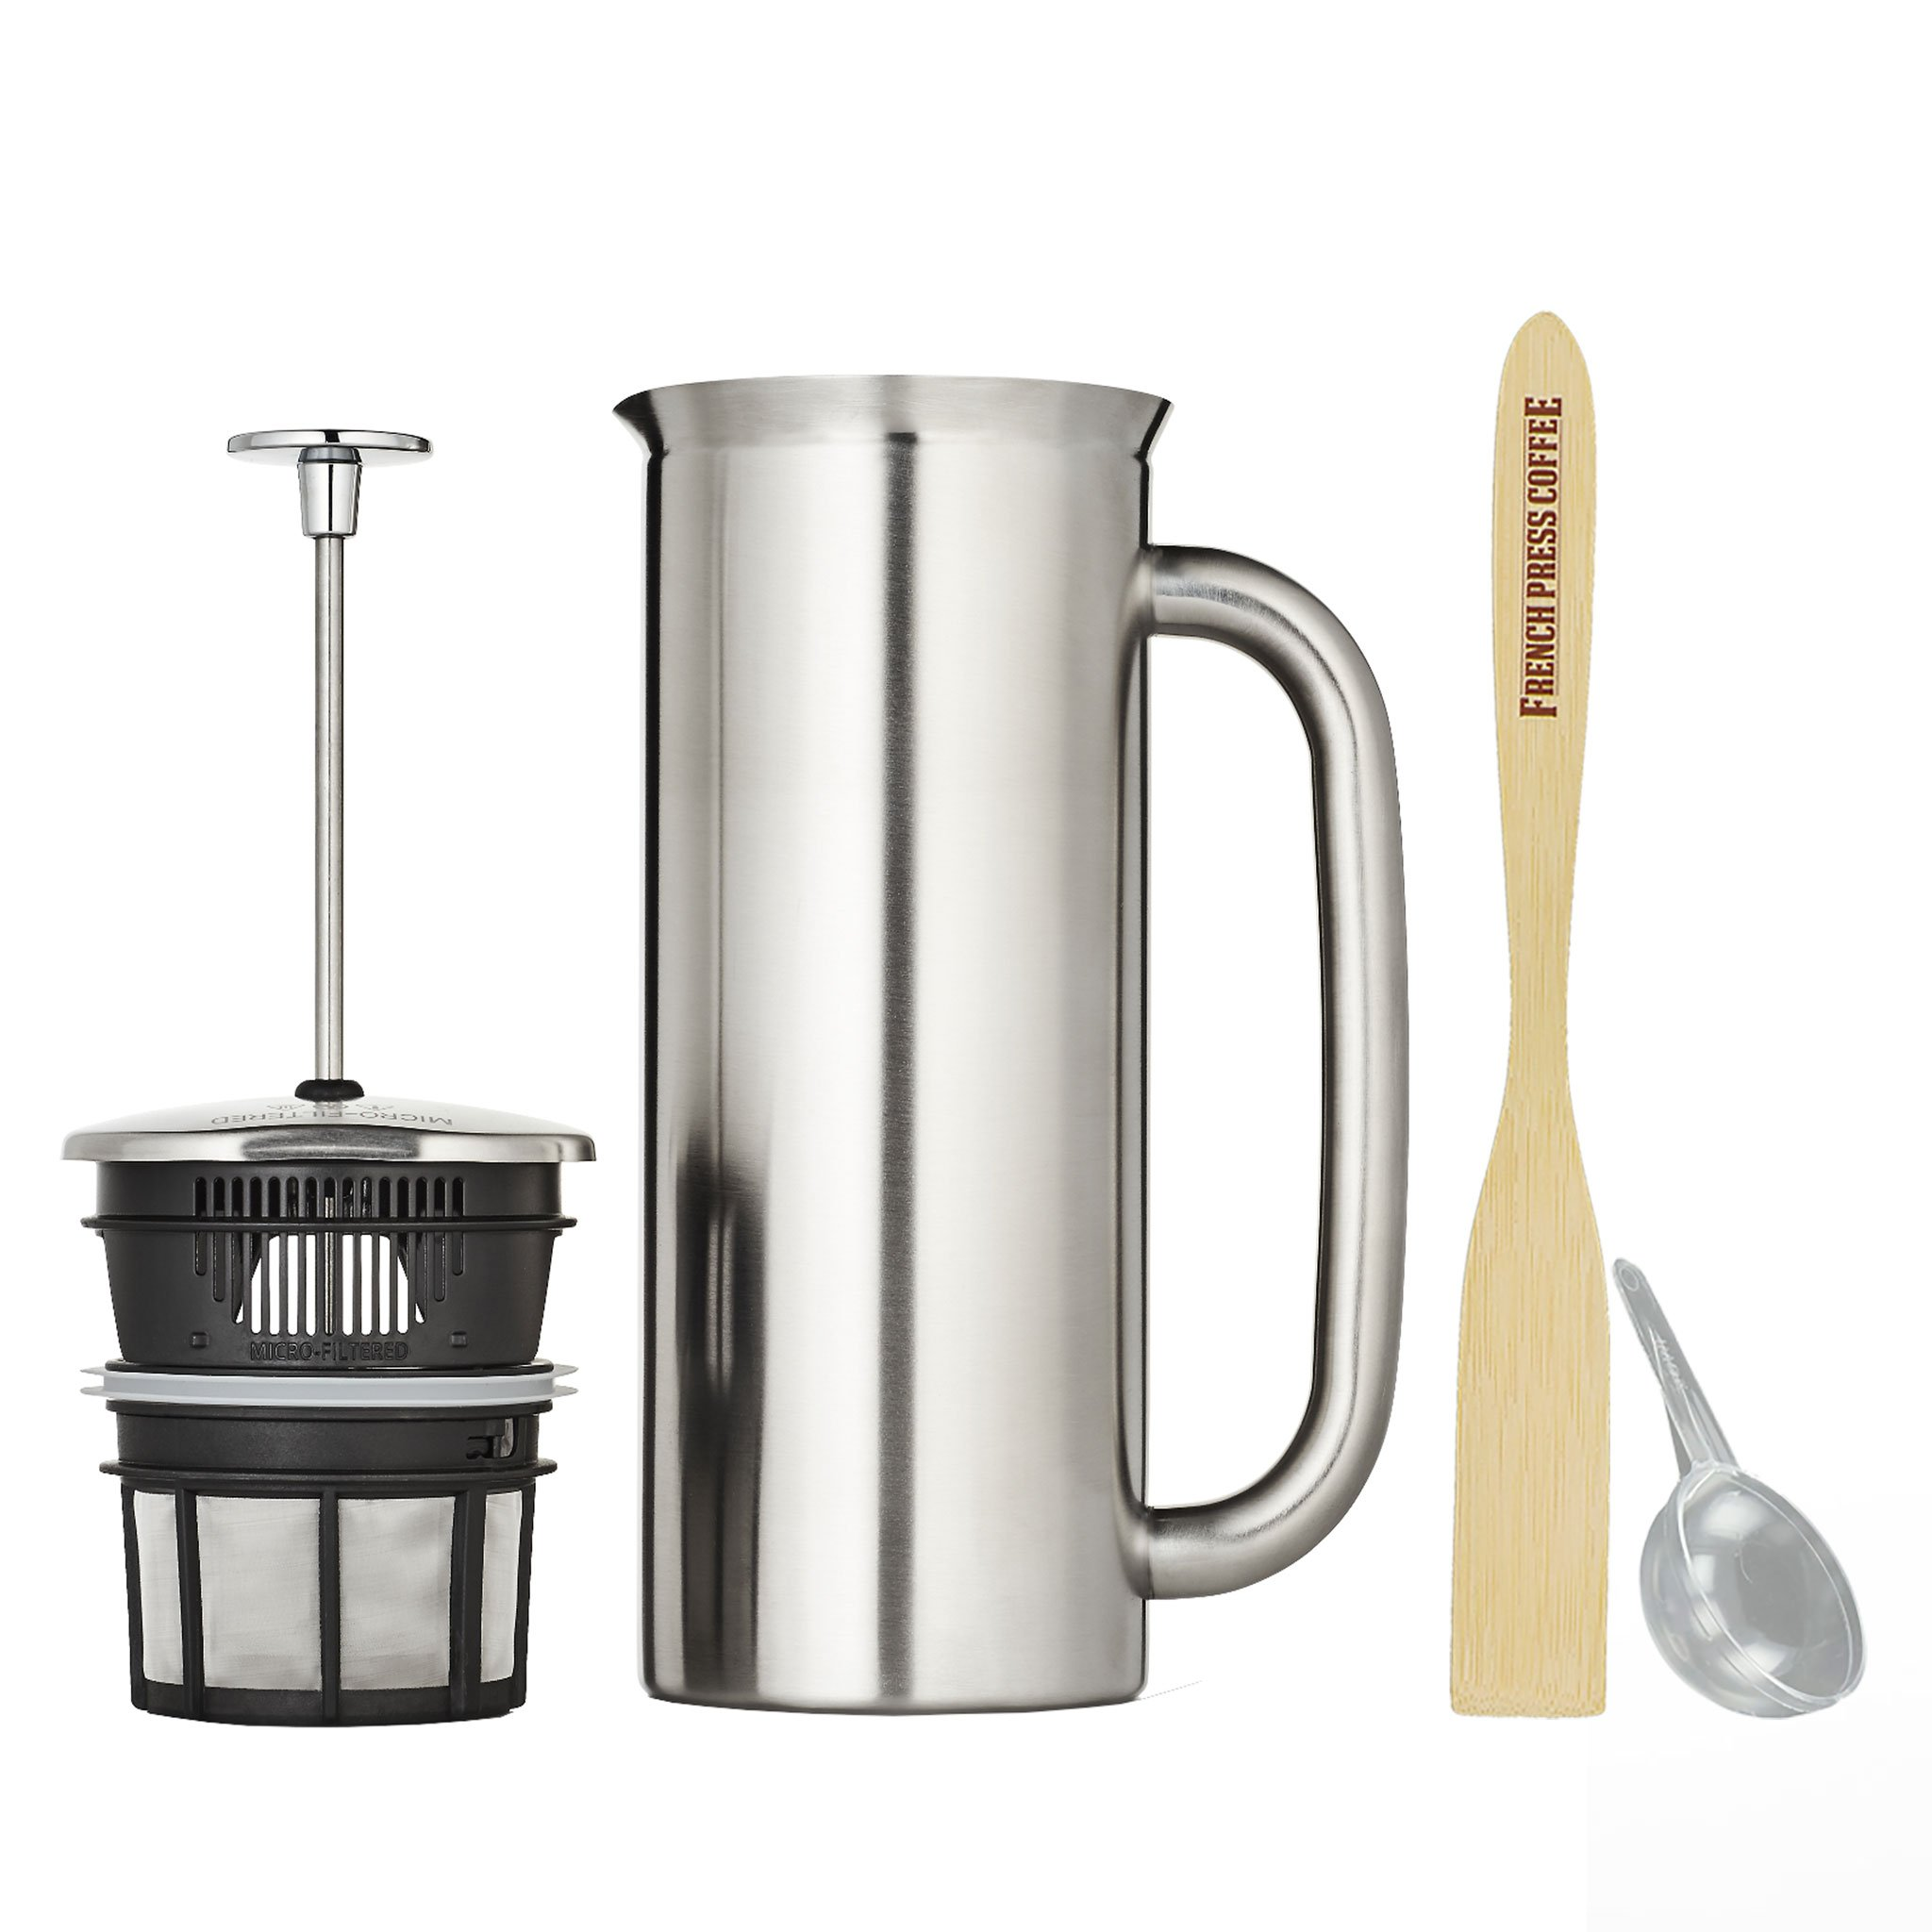 Espro Press Stainless Steel Coffee Press (6-8 cups, 32 oz) Bundle with Wooden Spoon, Double Wall, Vacuum Insulated, Brushed